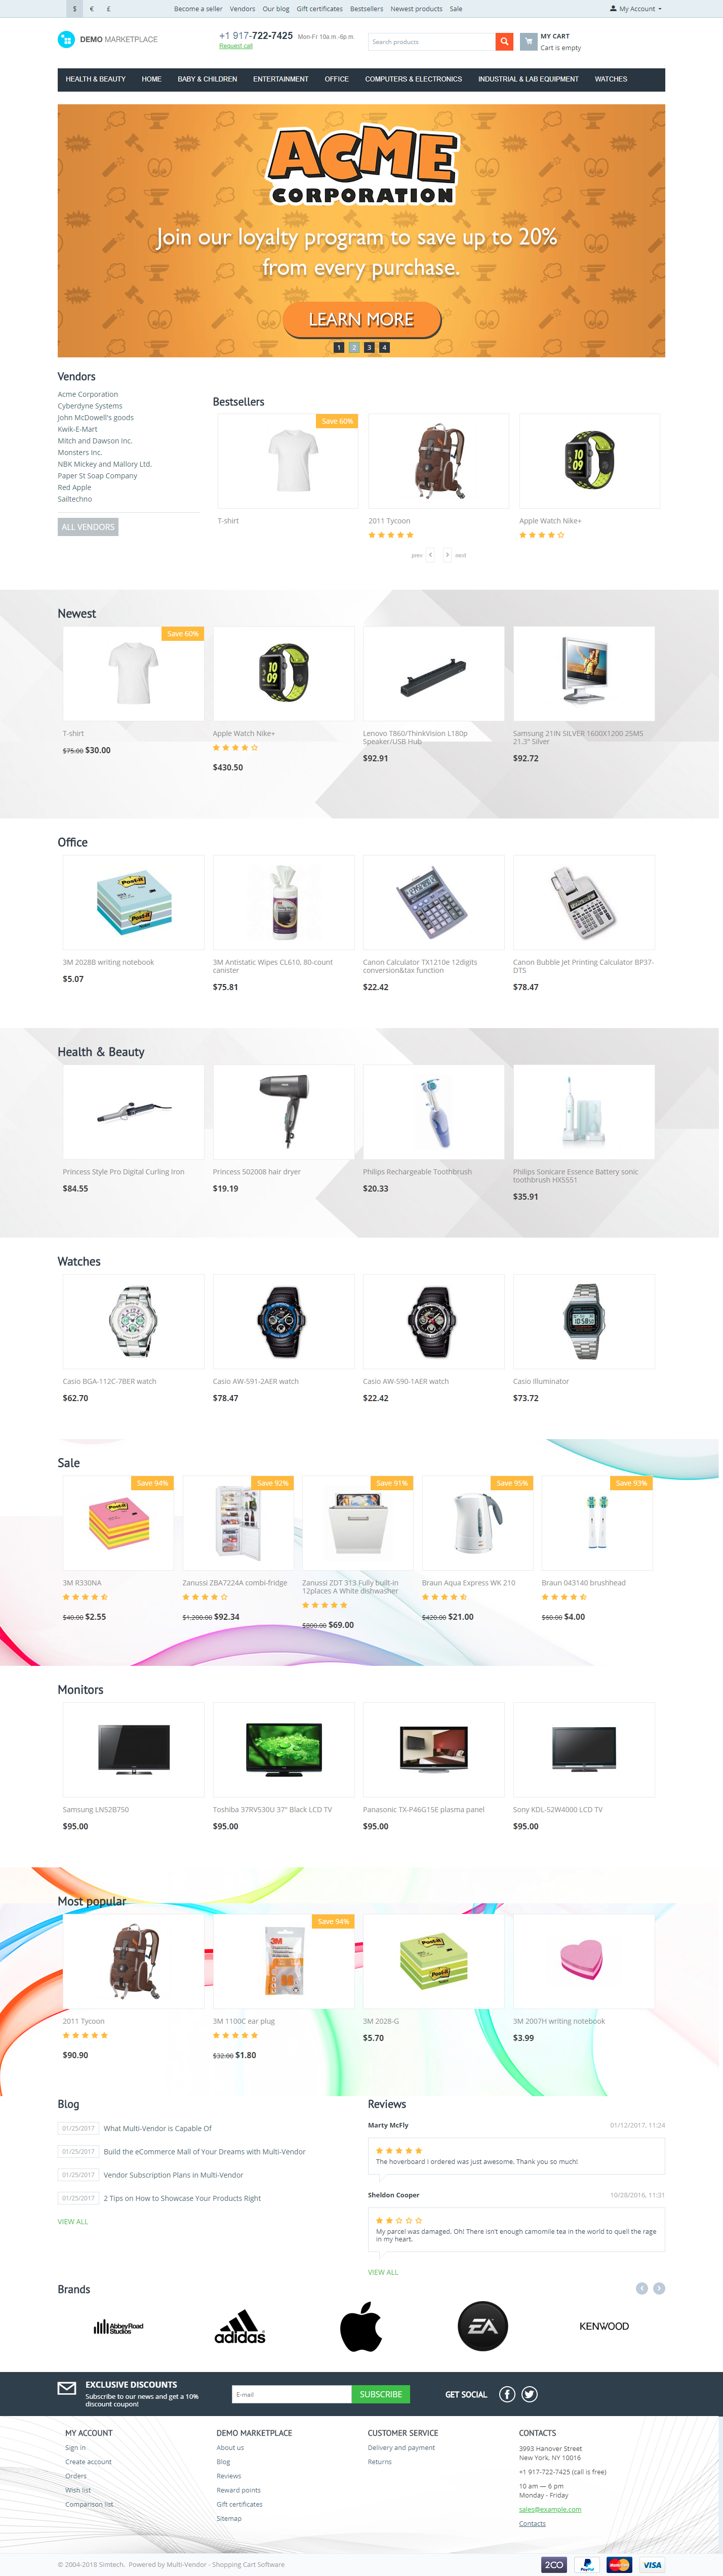 parallax-effect-homepage.png